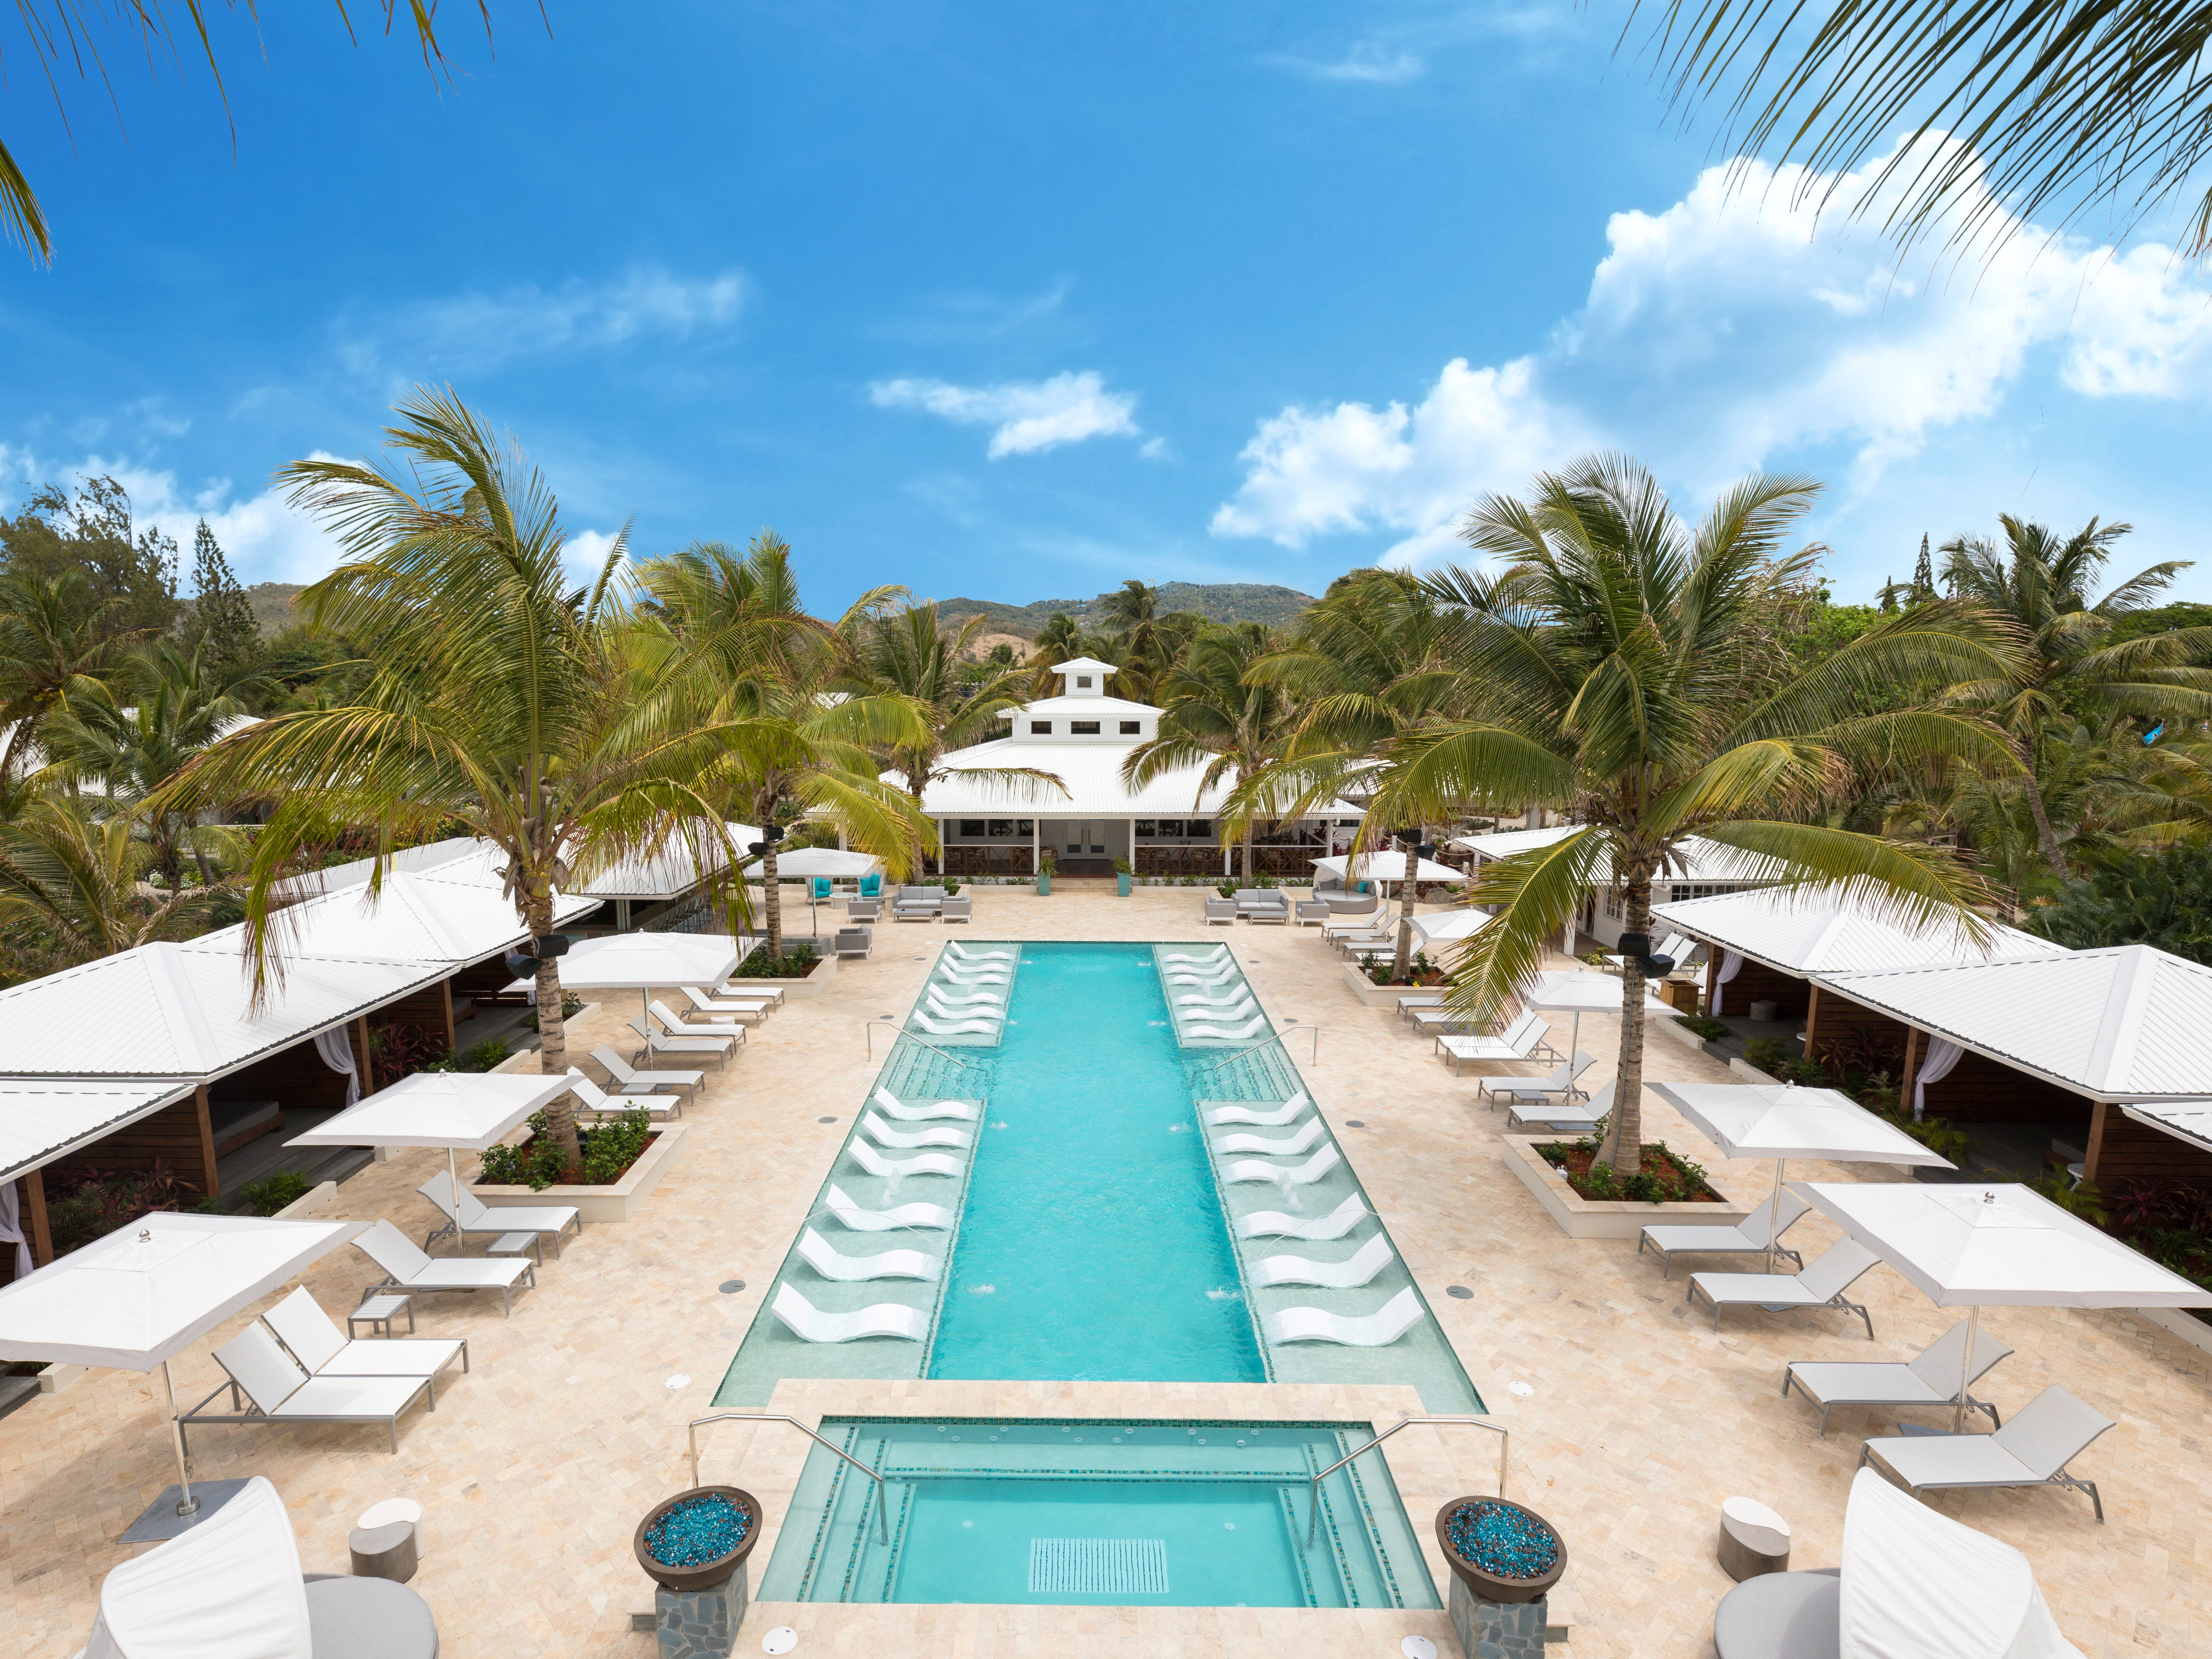 For adults only, Serenity at Coconut Bay is one pool-happy resort on the south coast.